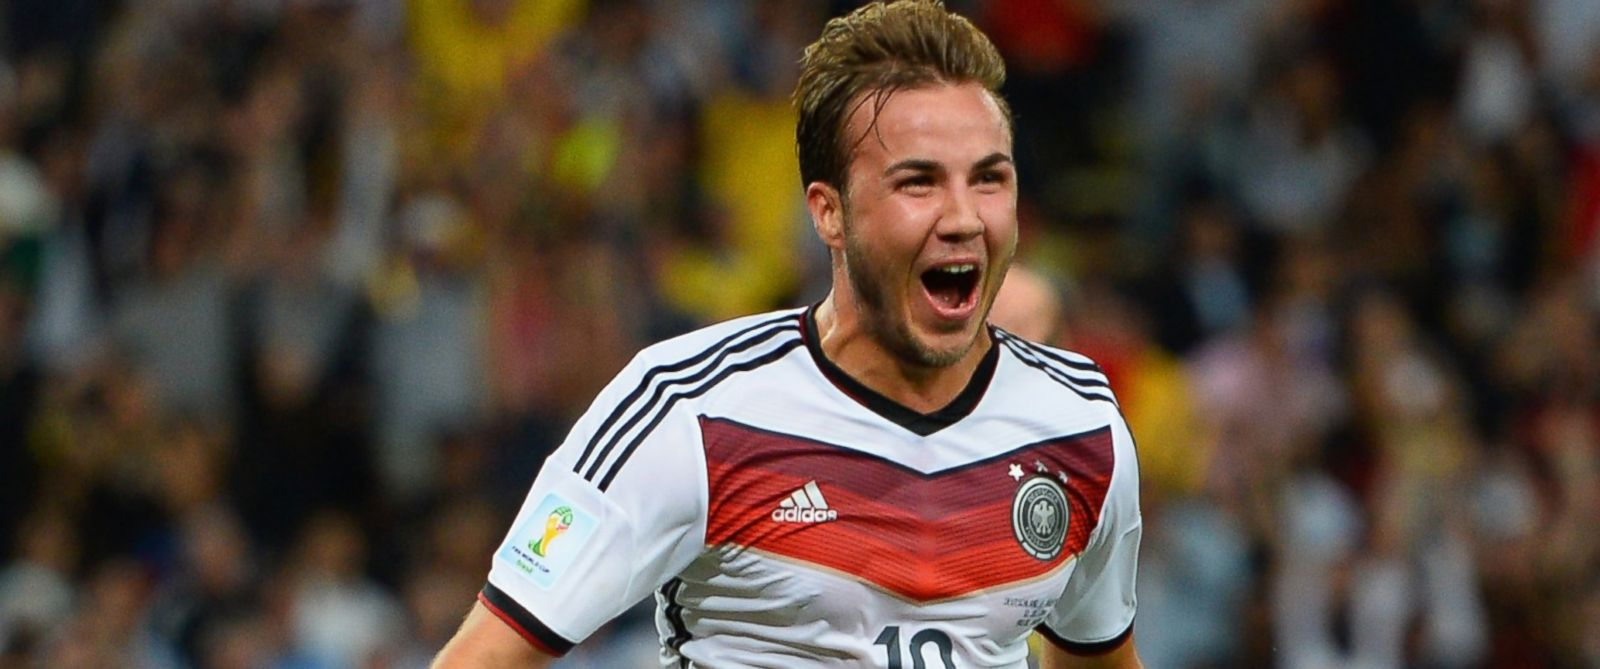 PHOTO: Mario Goetze of Germany celebrates scoring his teams first goal in extra time during the 2014 FIFA World Cup Brazil Final match between Germany and Argentina at Maracana, July 13, 2014, in Rio de Janeiro.